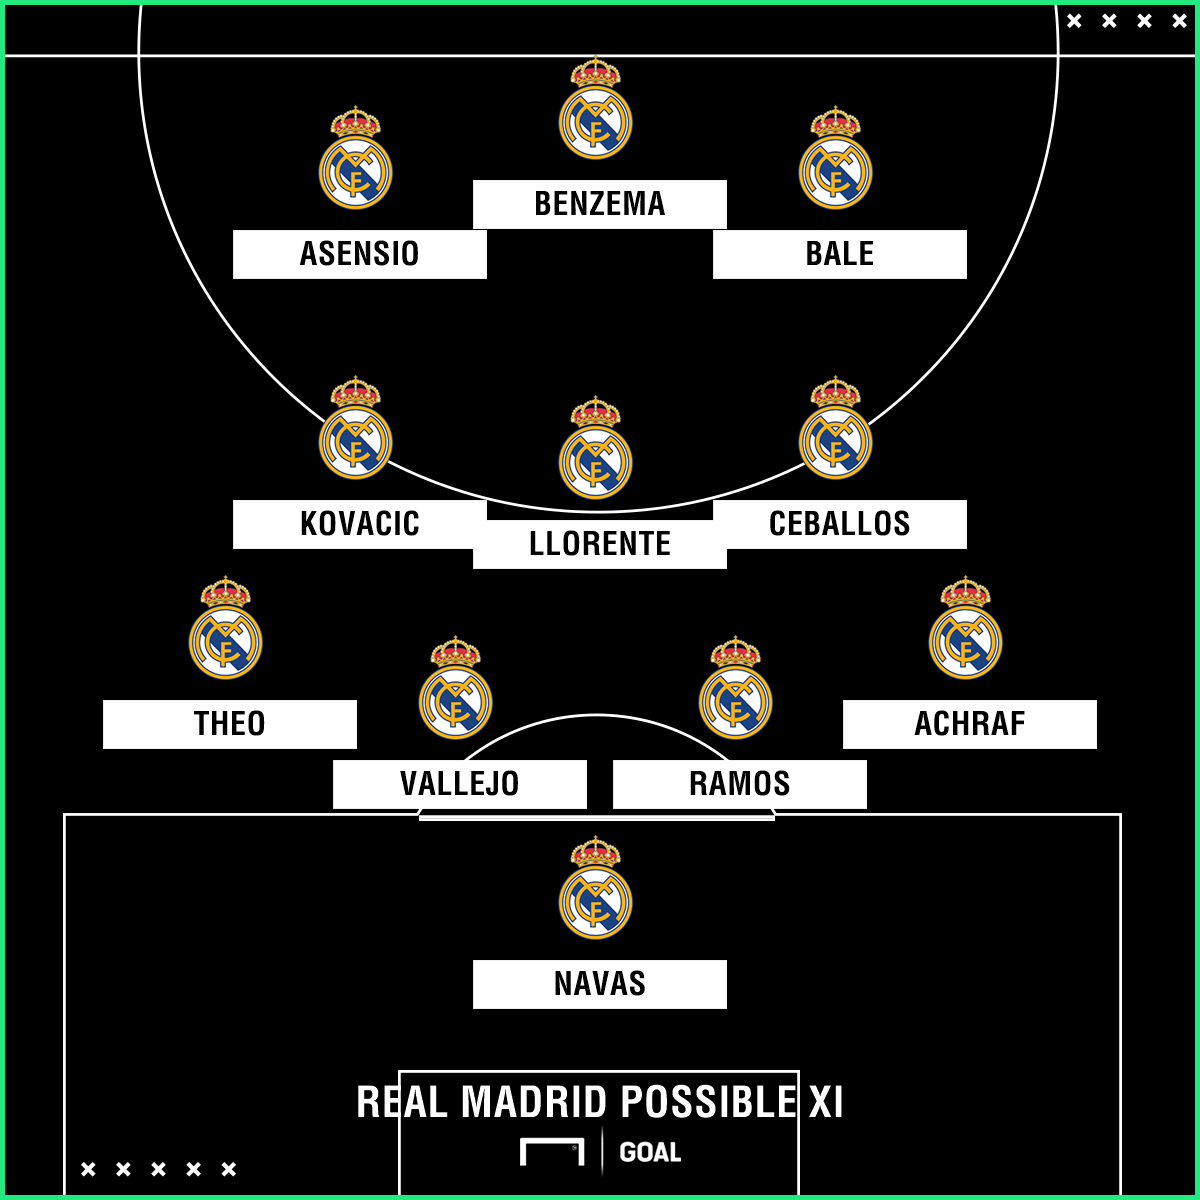 Real Madrid possible Leganes